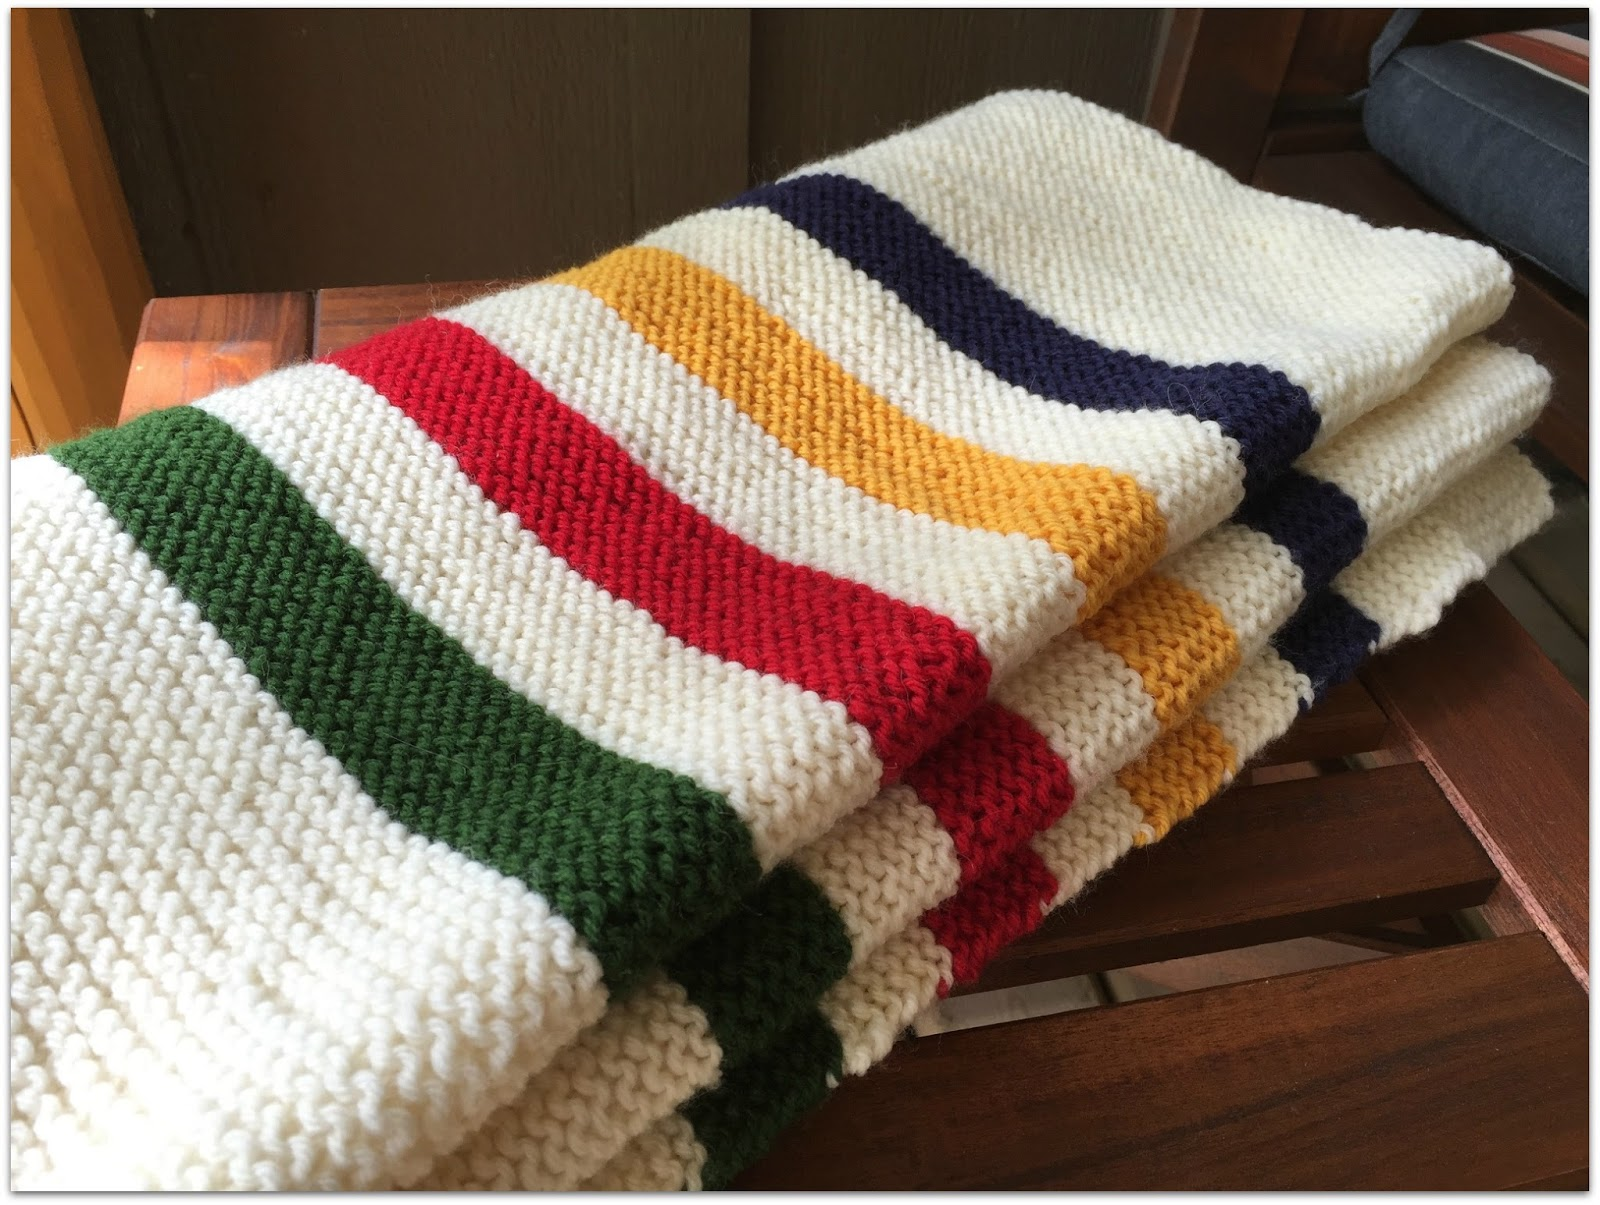 Knitting Pattern For Hudson Bay Blanket : North of 49: About the Blanket